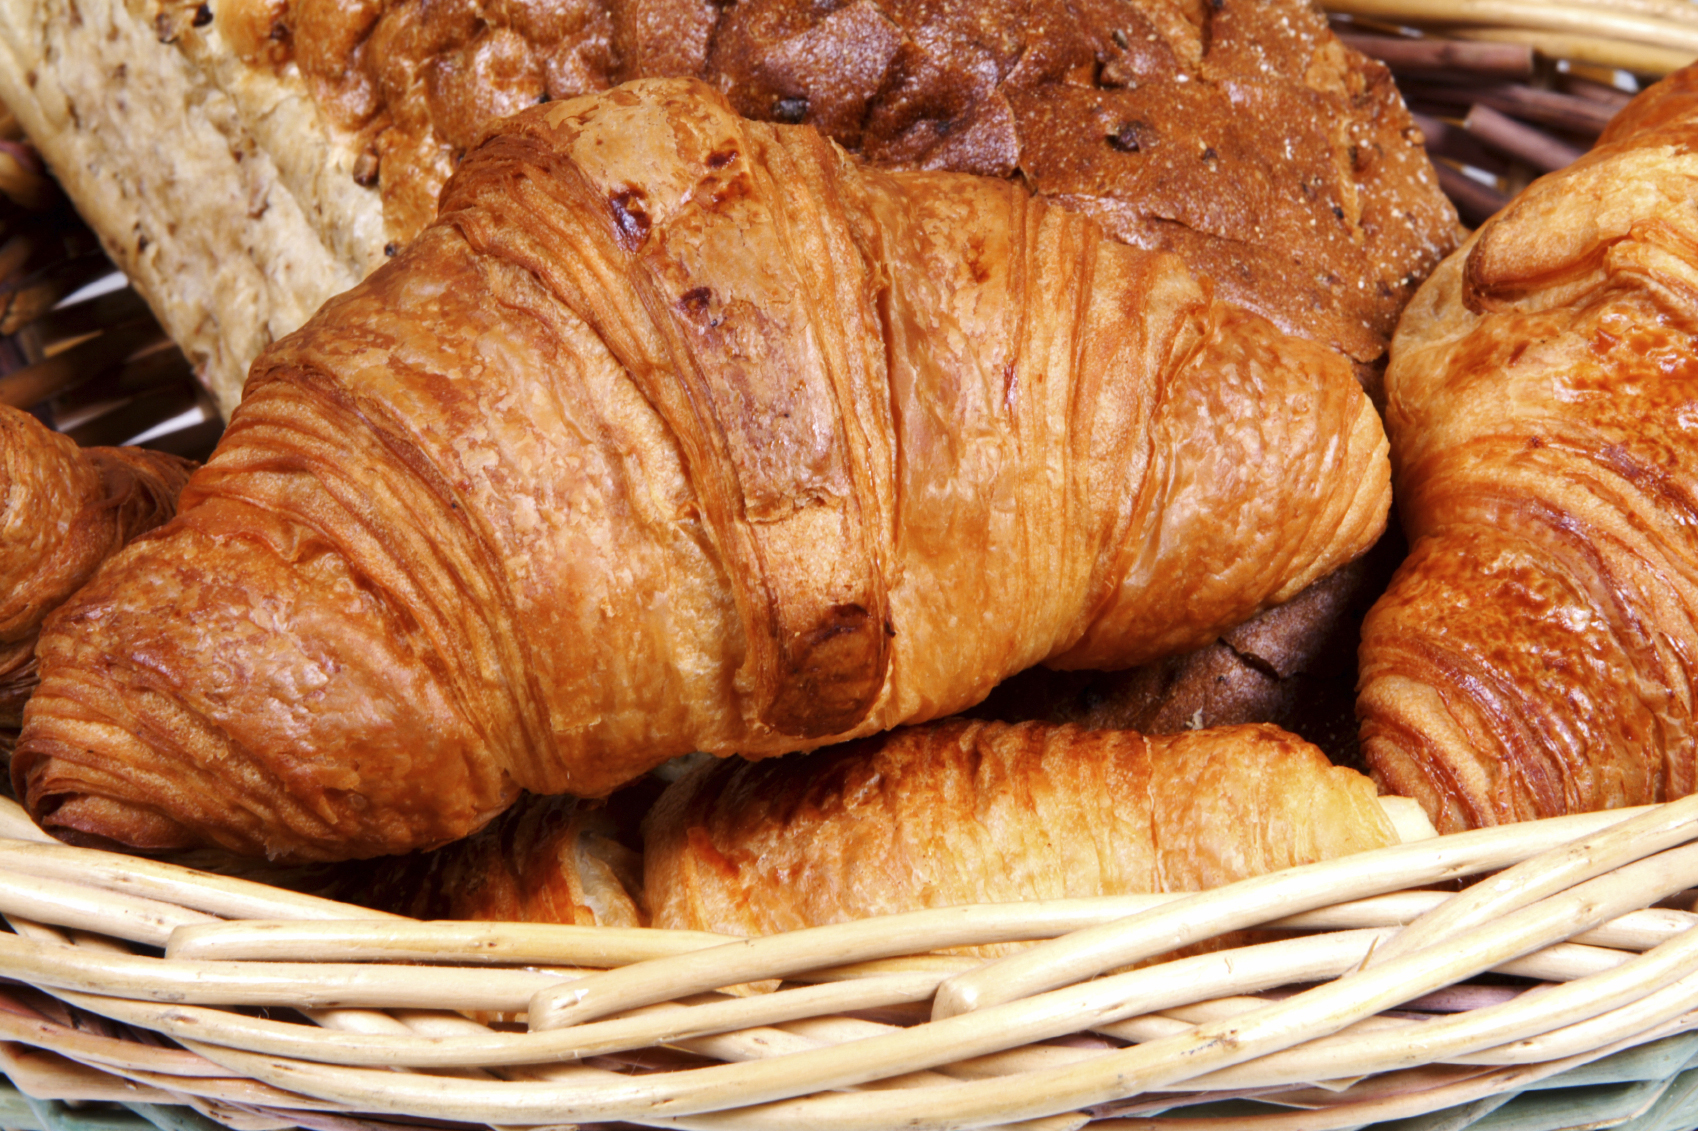 http://www.cocooningbreakfast.be/wp-content/uploads/2014/12/02.-Croissants-and-bread-medium-size-4-credits.jpg